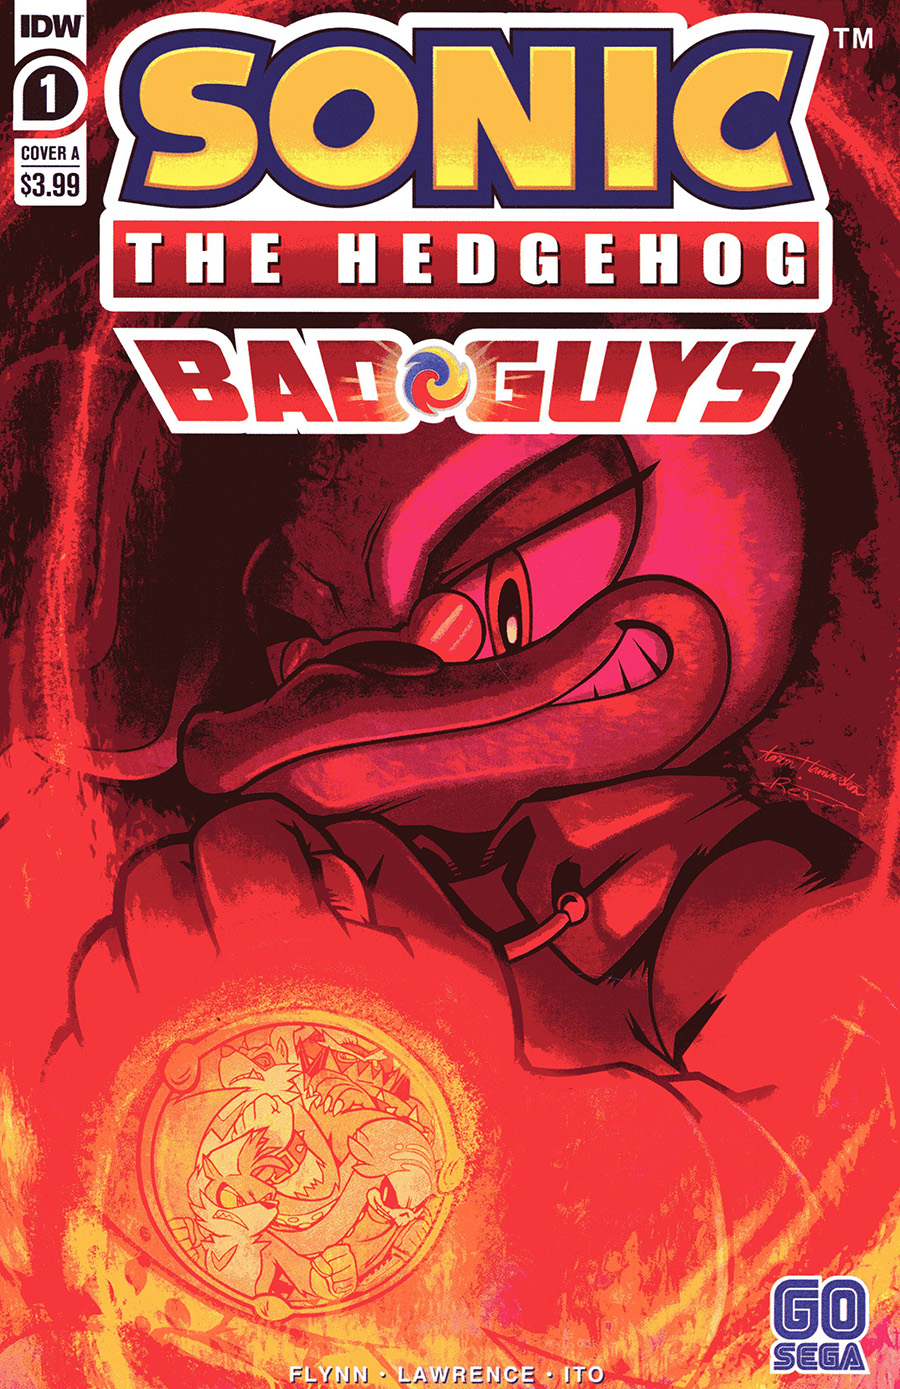 Sonic The Hedgehog Bad Guys #1 Cover A Regular Aaron Hammerstrom Cover